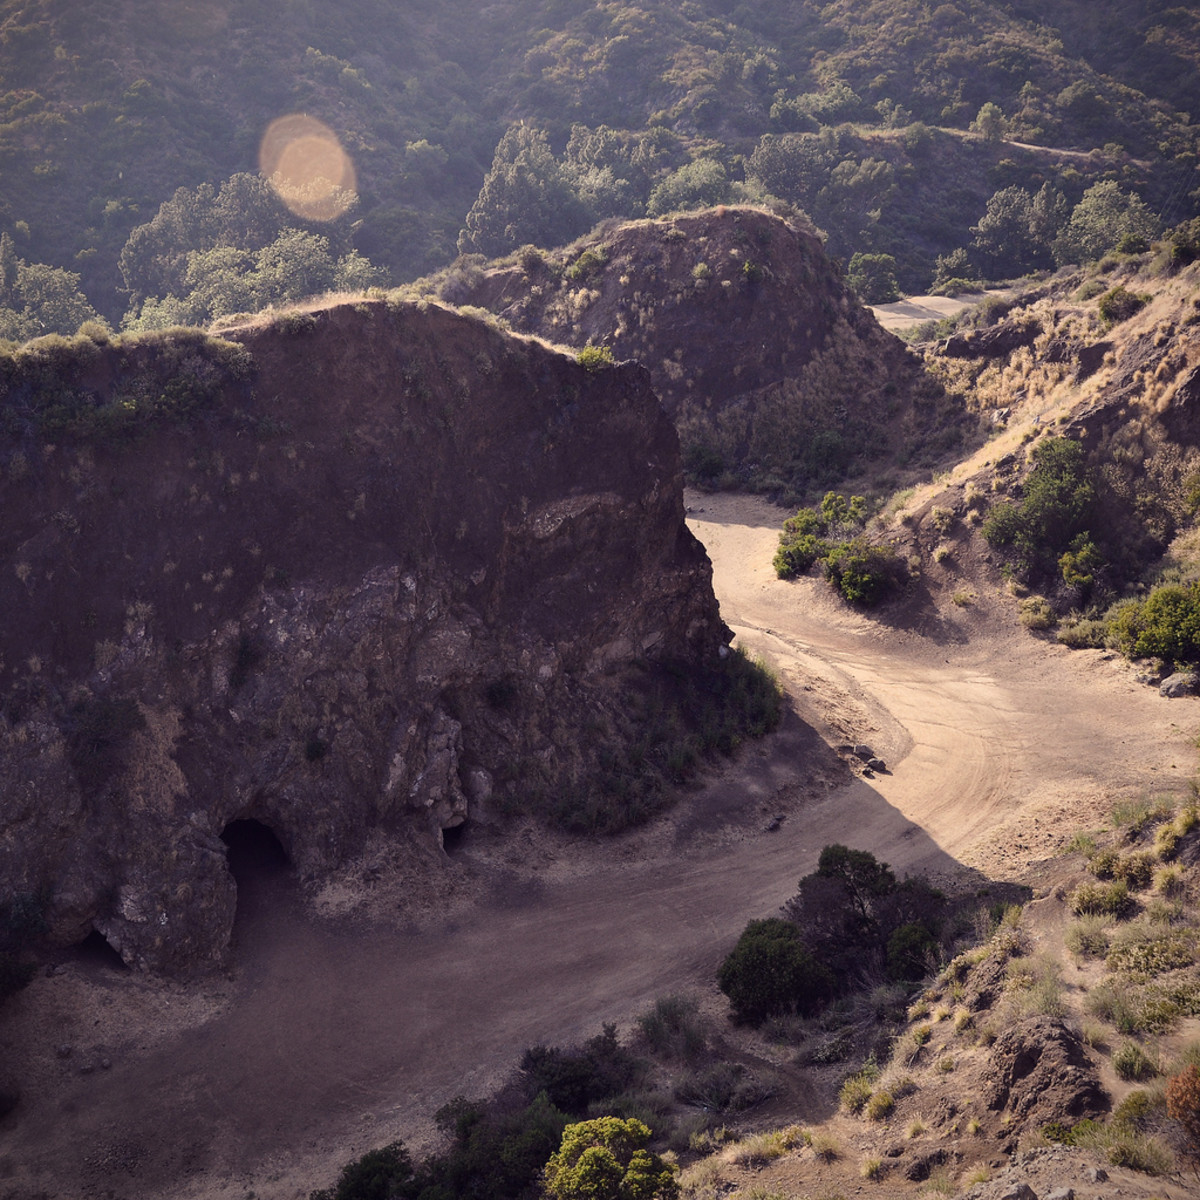 Bronson Caves served as the setting of the bat cave in the 1960s Batman television series.